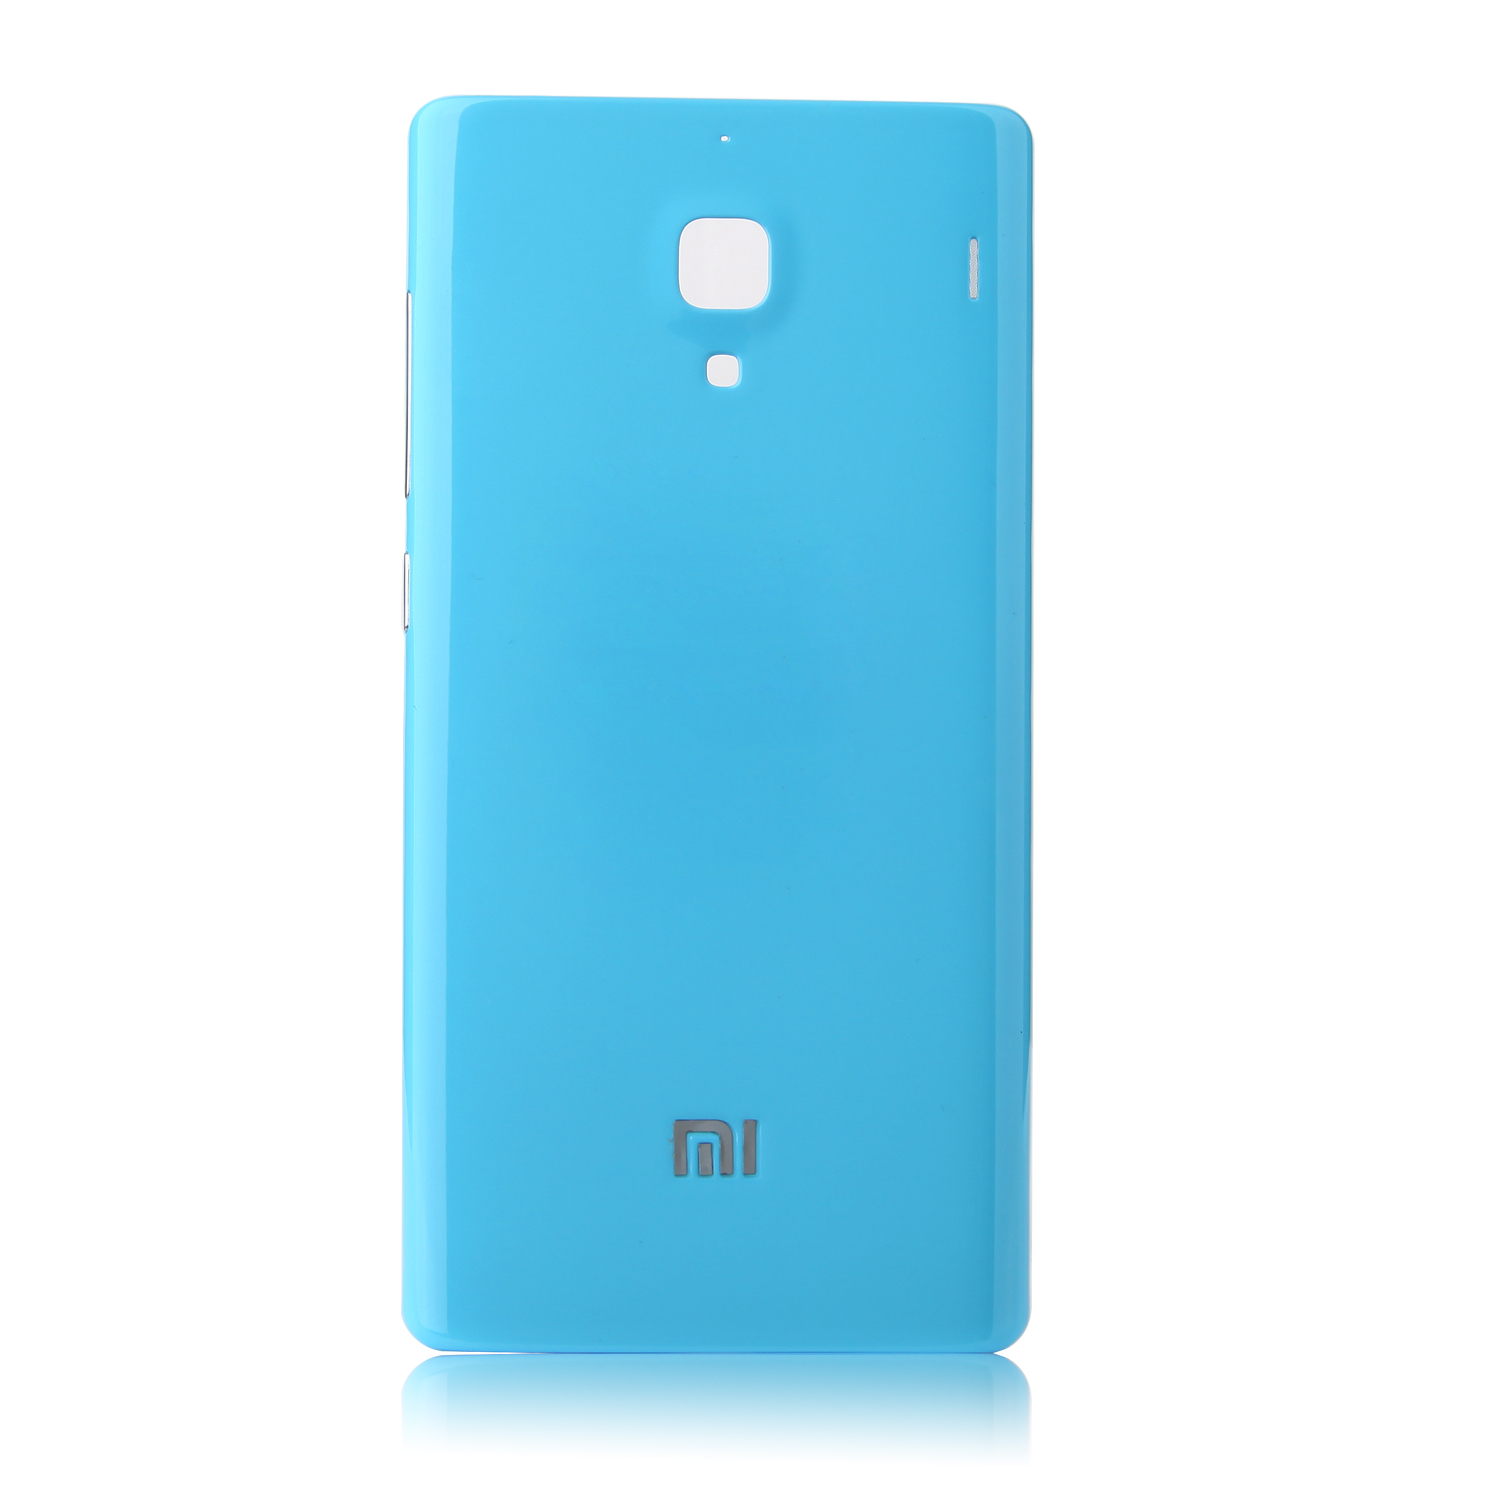 Replacement Battery Cover Back Case for XIAOMI Redmi 1S Smartphone Blue